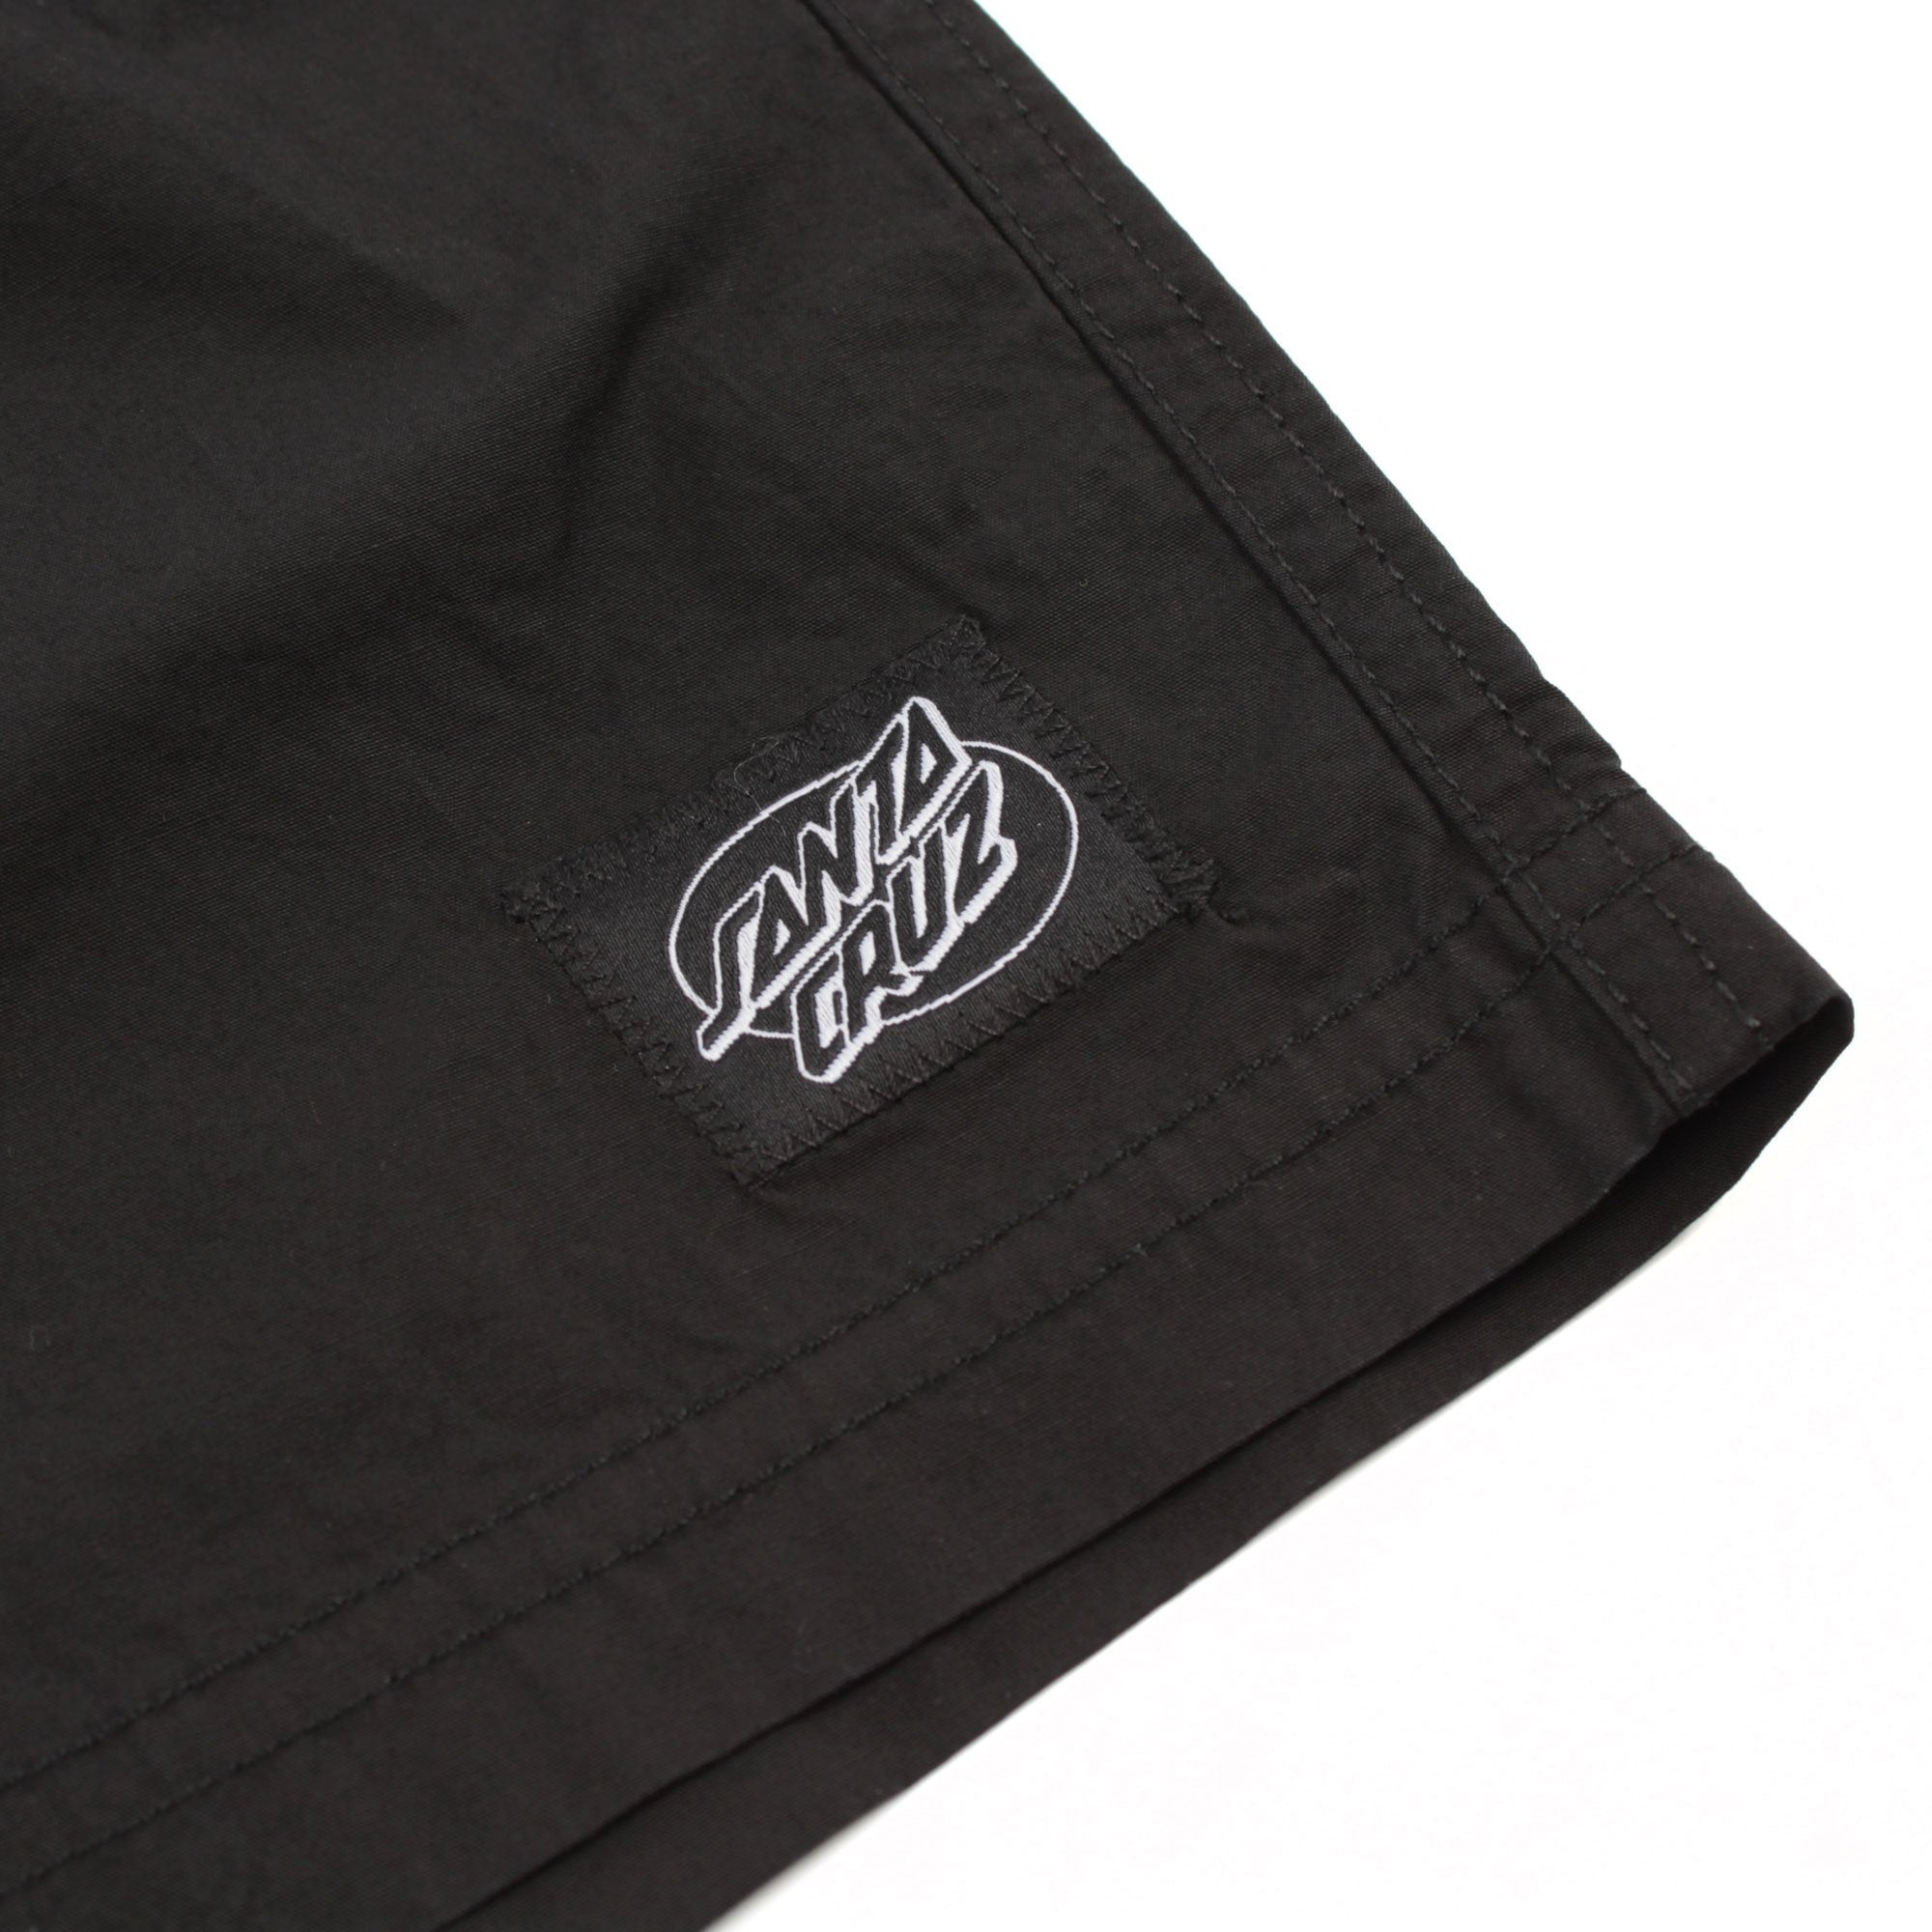 Santa Cruz Cruzier Solid Shorts